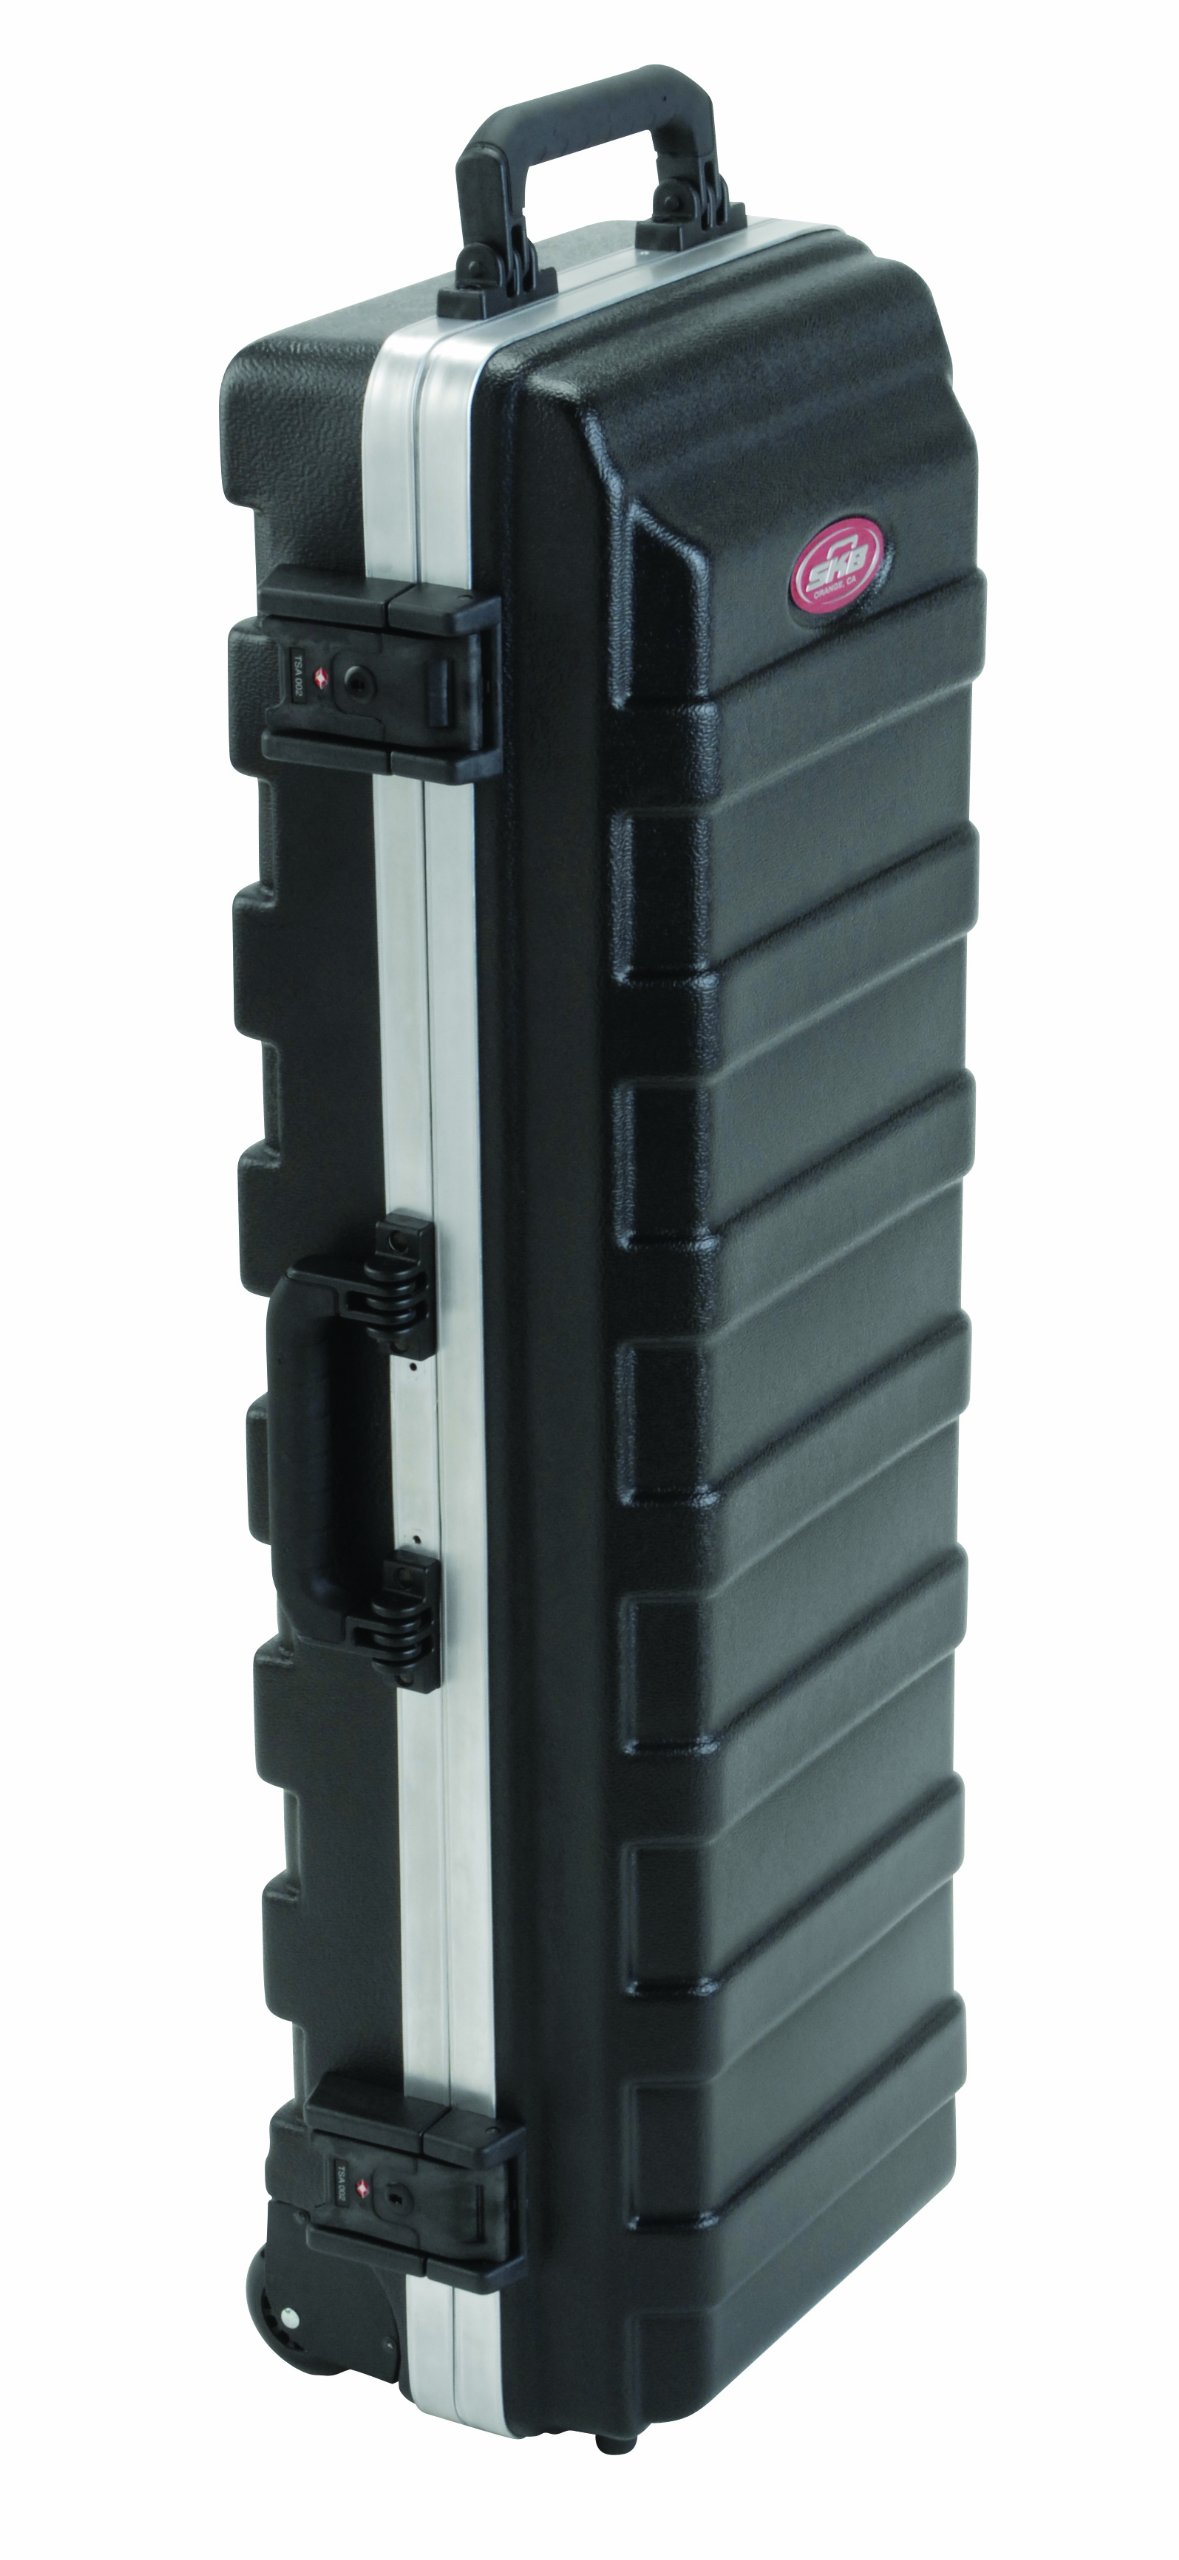 SKB Compact Stand Case 36-1/2 x 11-7/8 x 8-1/4 with Wheels & Straps, TSA Latches, Over molded Handle